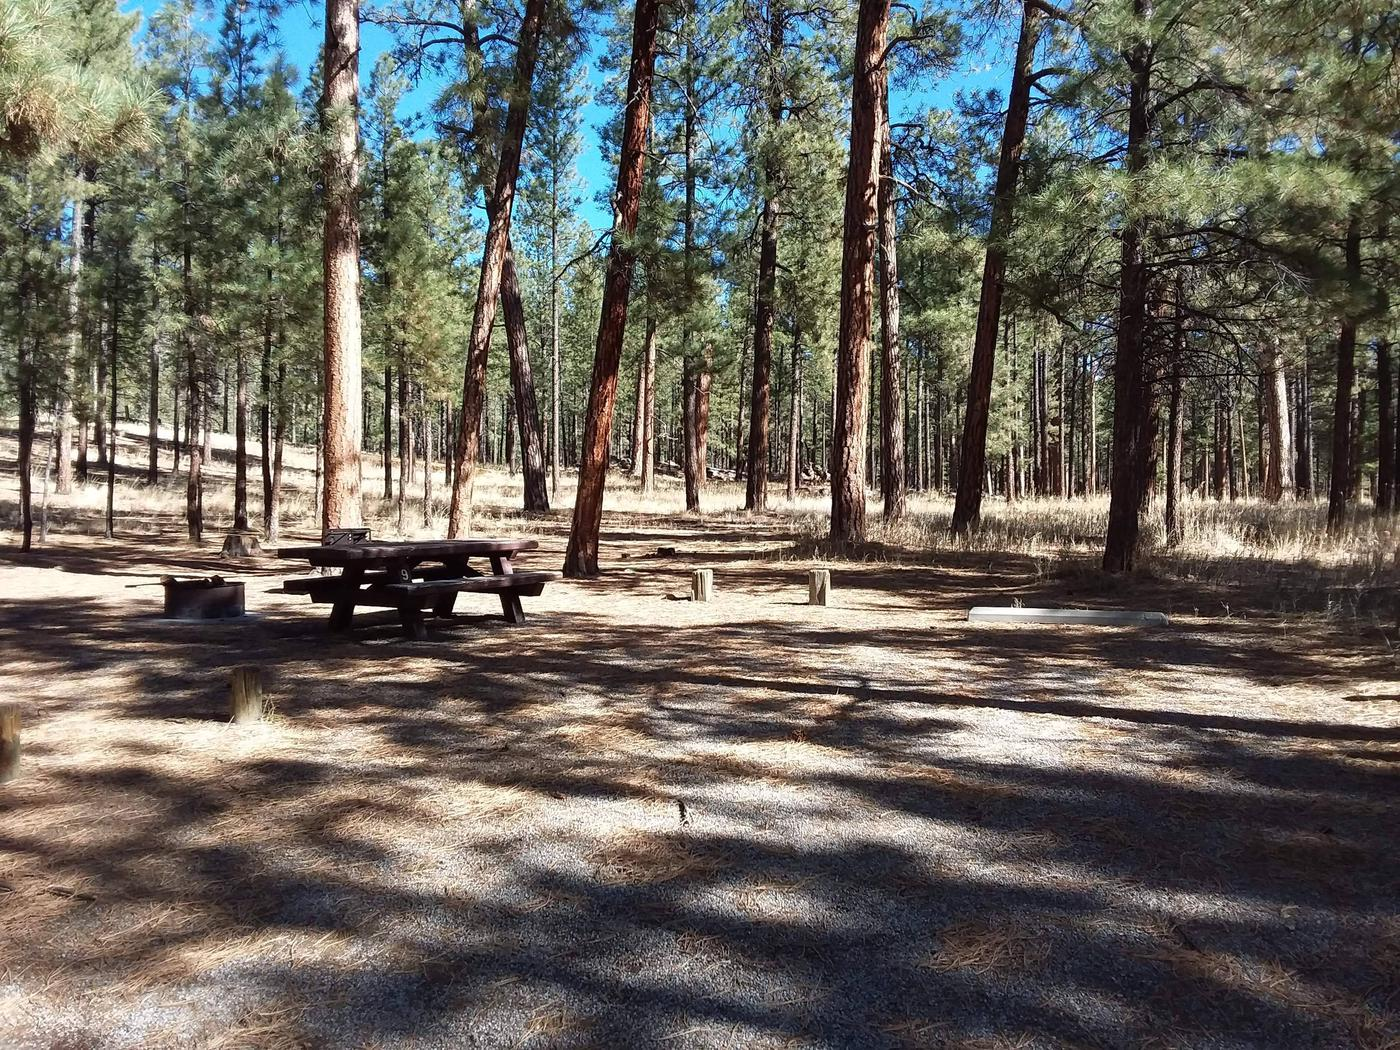 Site 9, shaded by pines, provides a grill, picnic table, and fire pit to enjoy the forested scenery.Site 9